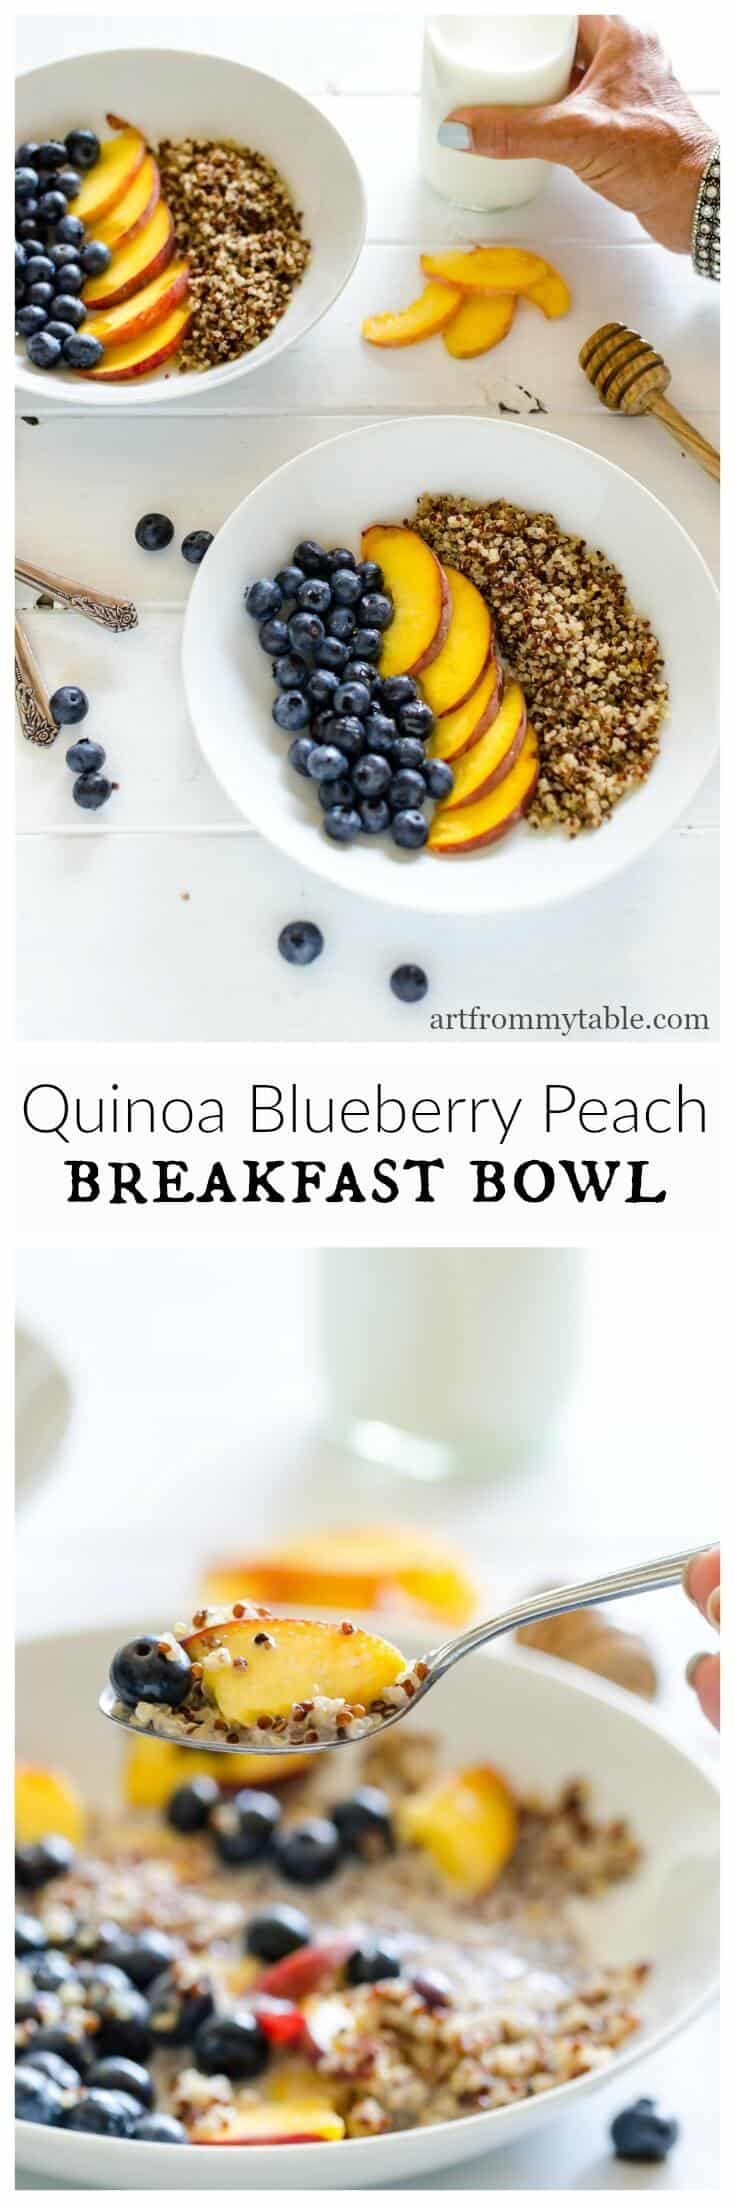 Change up your breakfast routine for summer! This is the perfect time to savor blueberries and peaches and all the summer fruit! Quinoa and fruit breakfast bowls are a very simple yet energizing and tasty way to start your day. #breakfast #summer #quinoa #freshblueberries #freshpeaches #easyrecipe via @artfrommytable